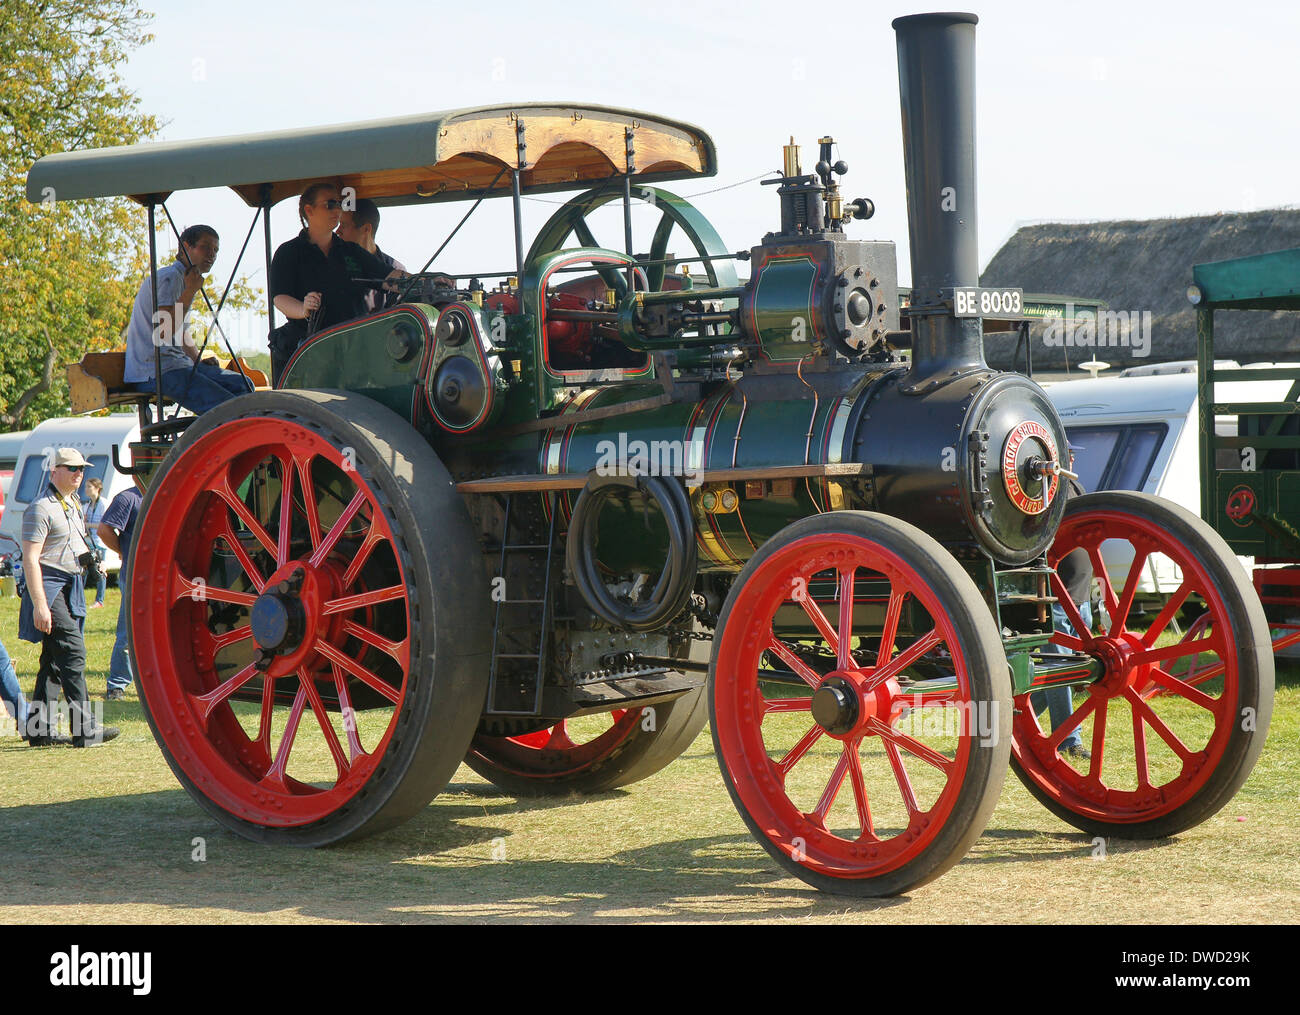 1910 Clayton & Shuttleworth General Purpose Engine steam traction engine No. 43200 BE8003 The Gaffer - Stock Image